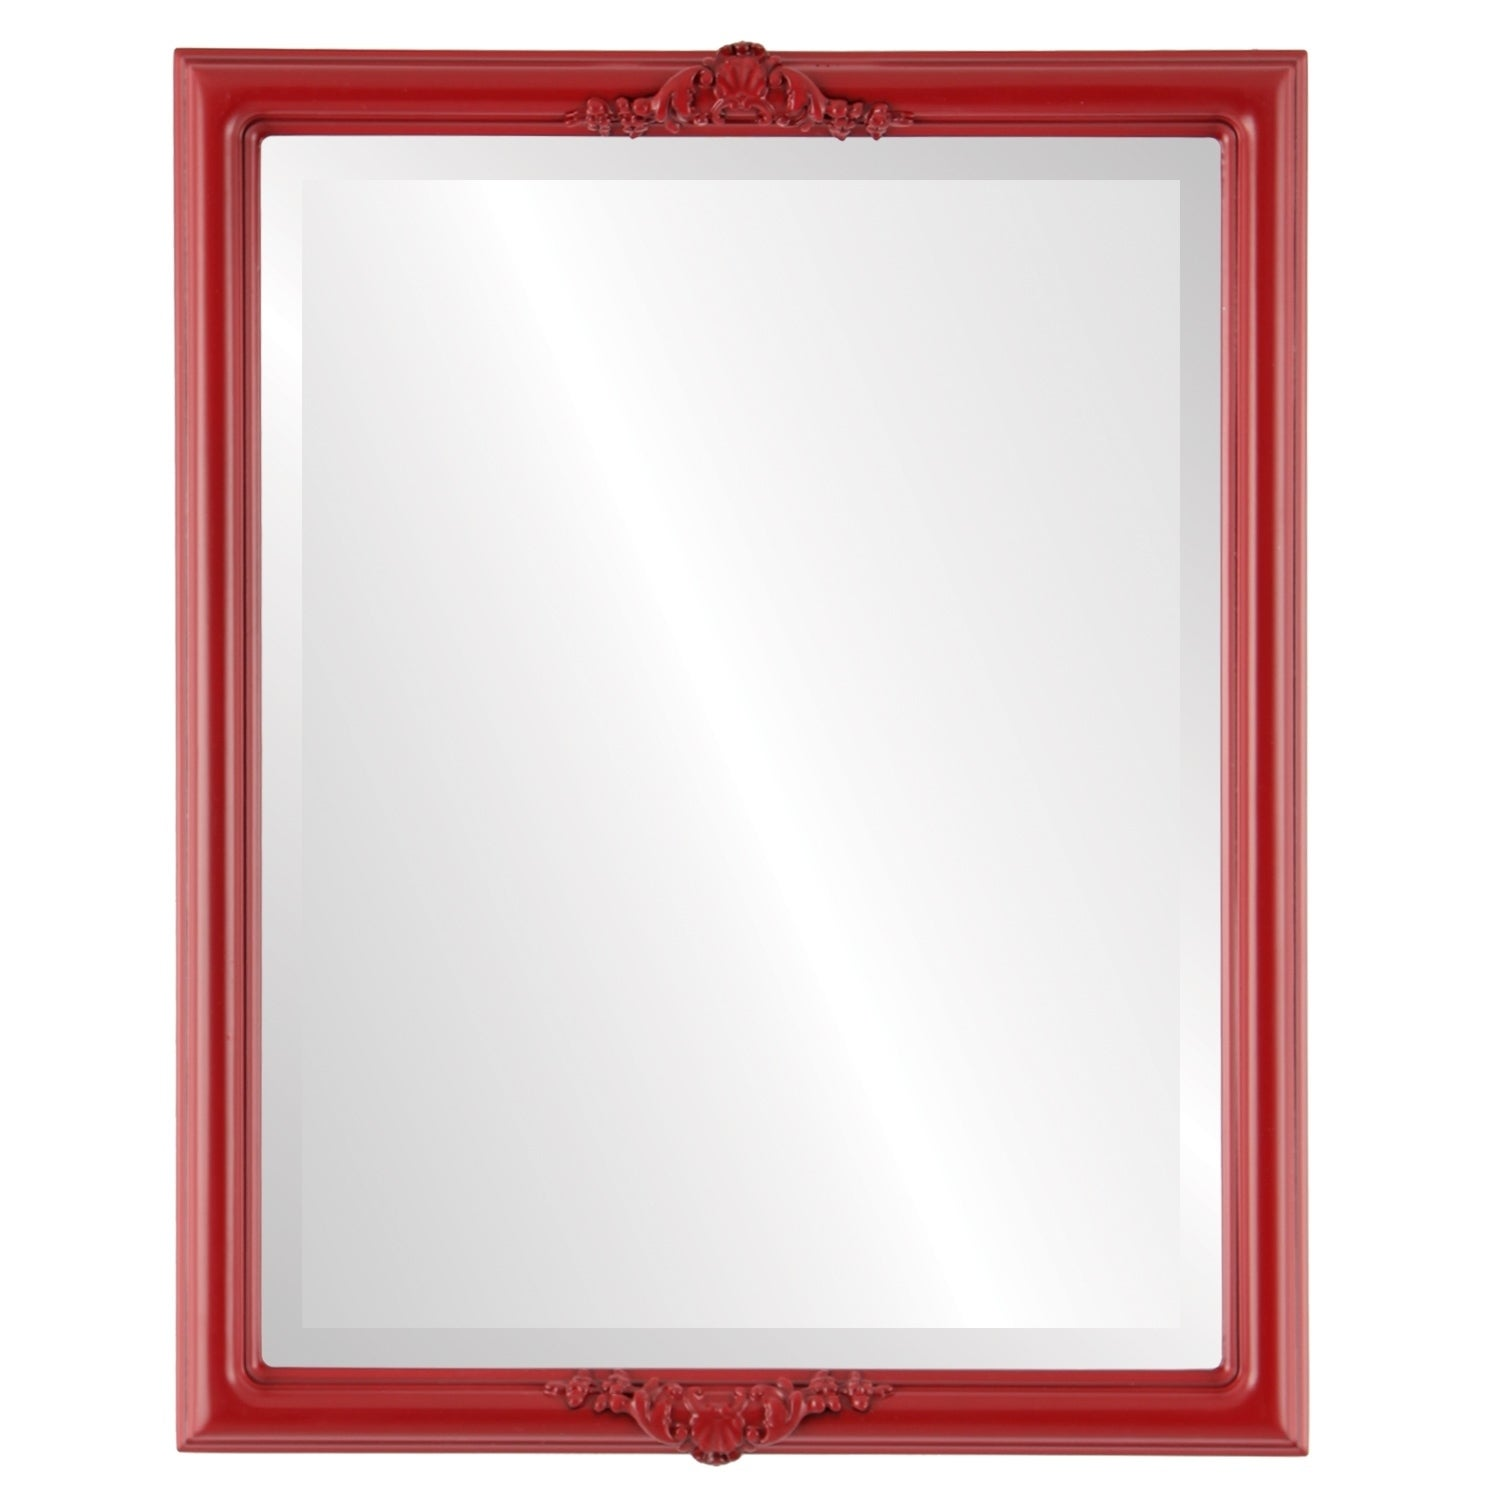 Contessa Framed Rectangle Mirror in Holiday Red (21x25)